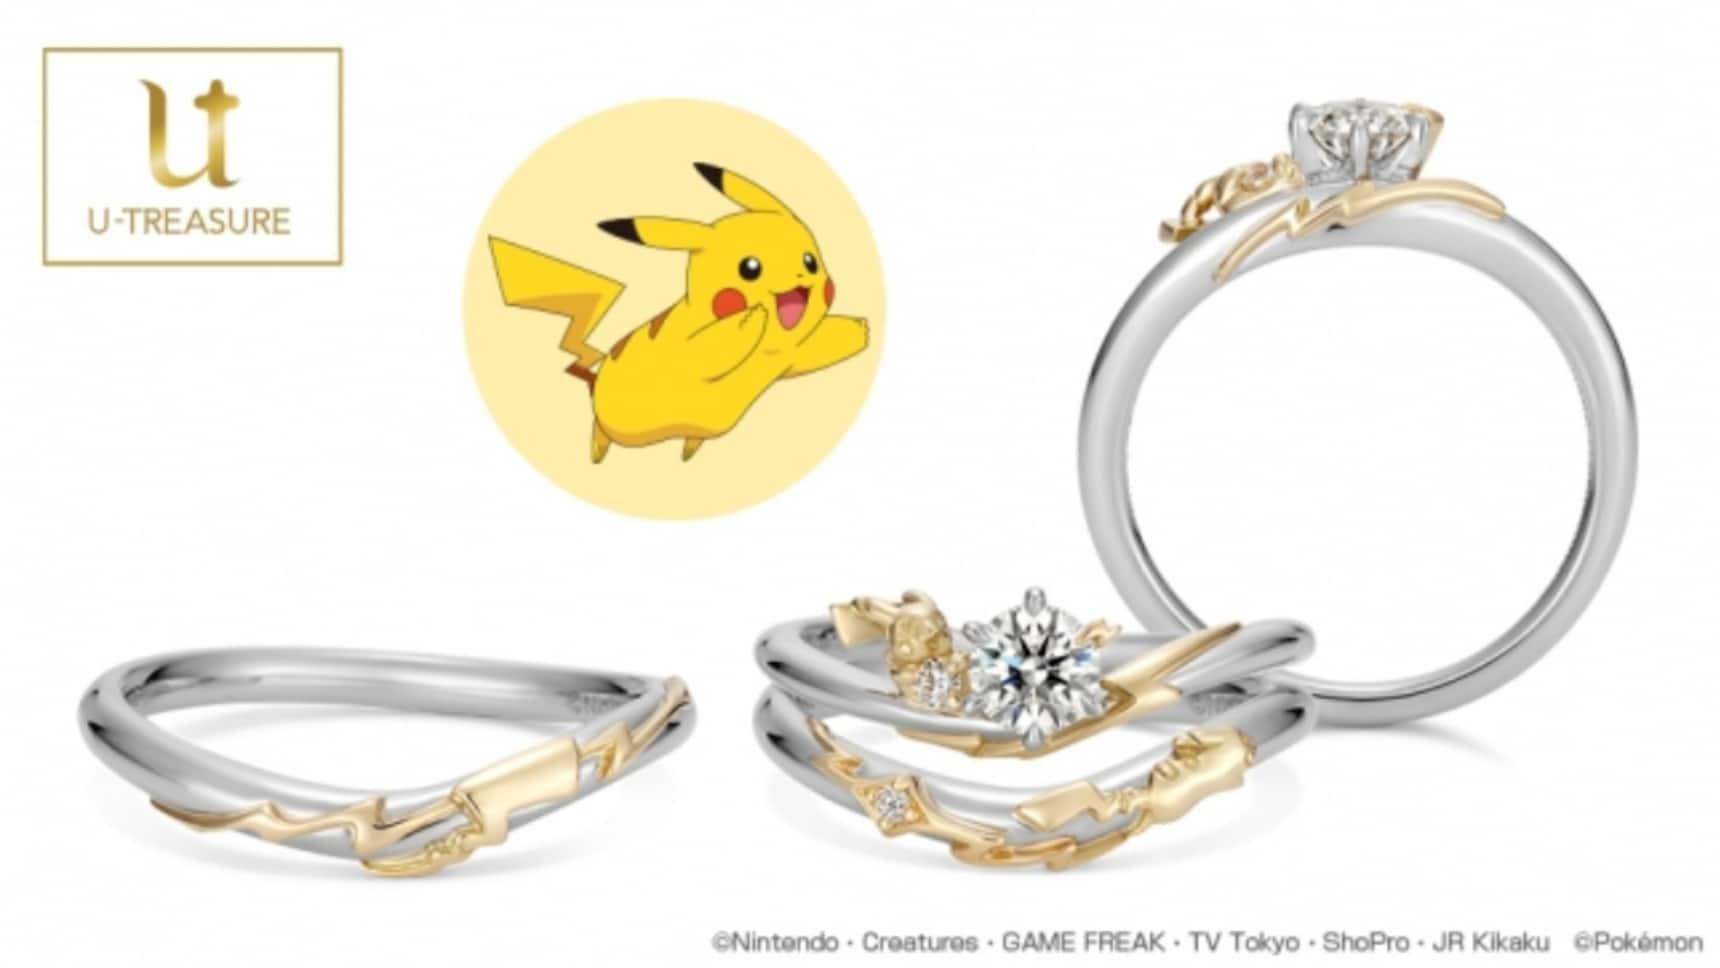 Say 'I Choose You' & 'I Do' With Pikachu